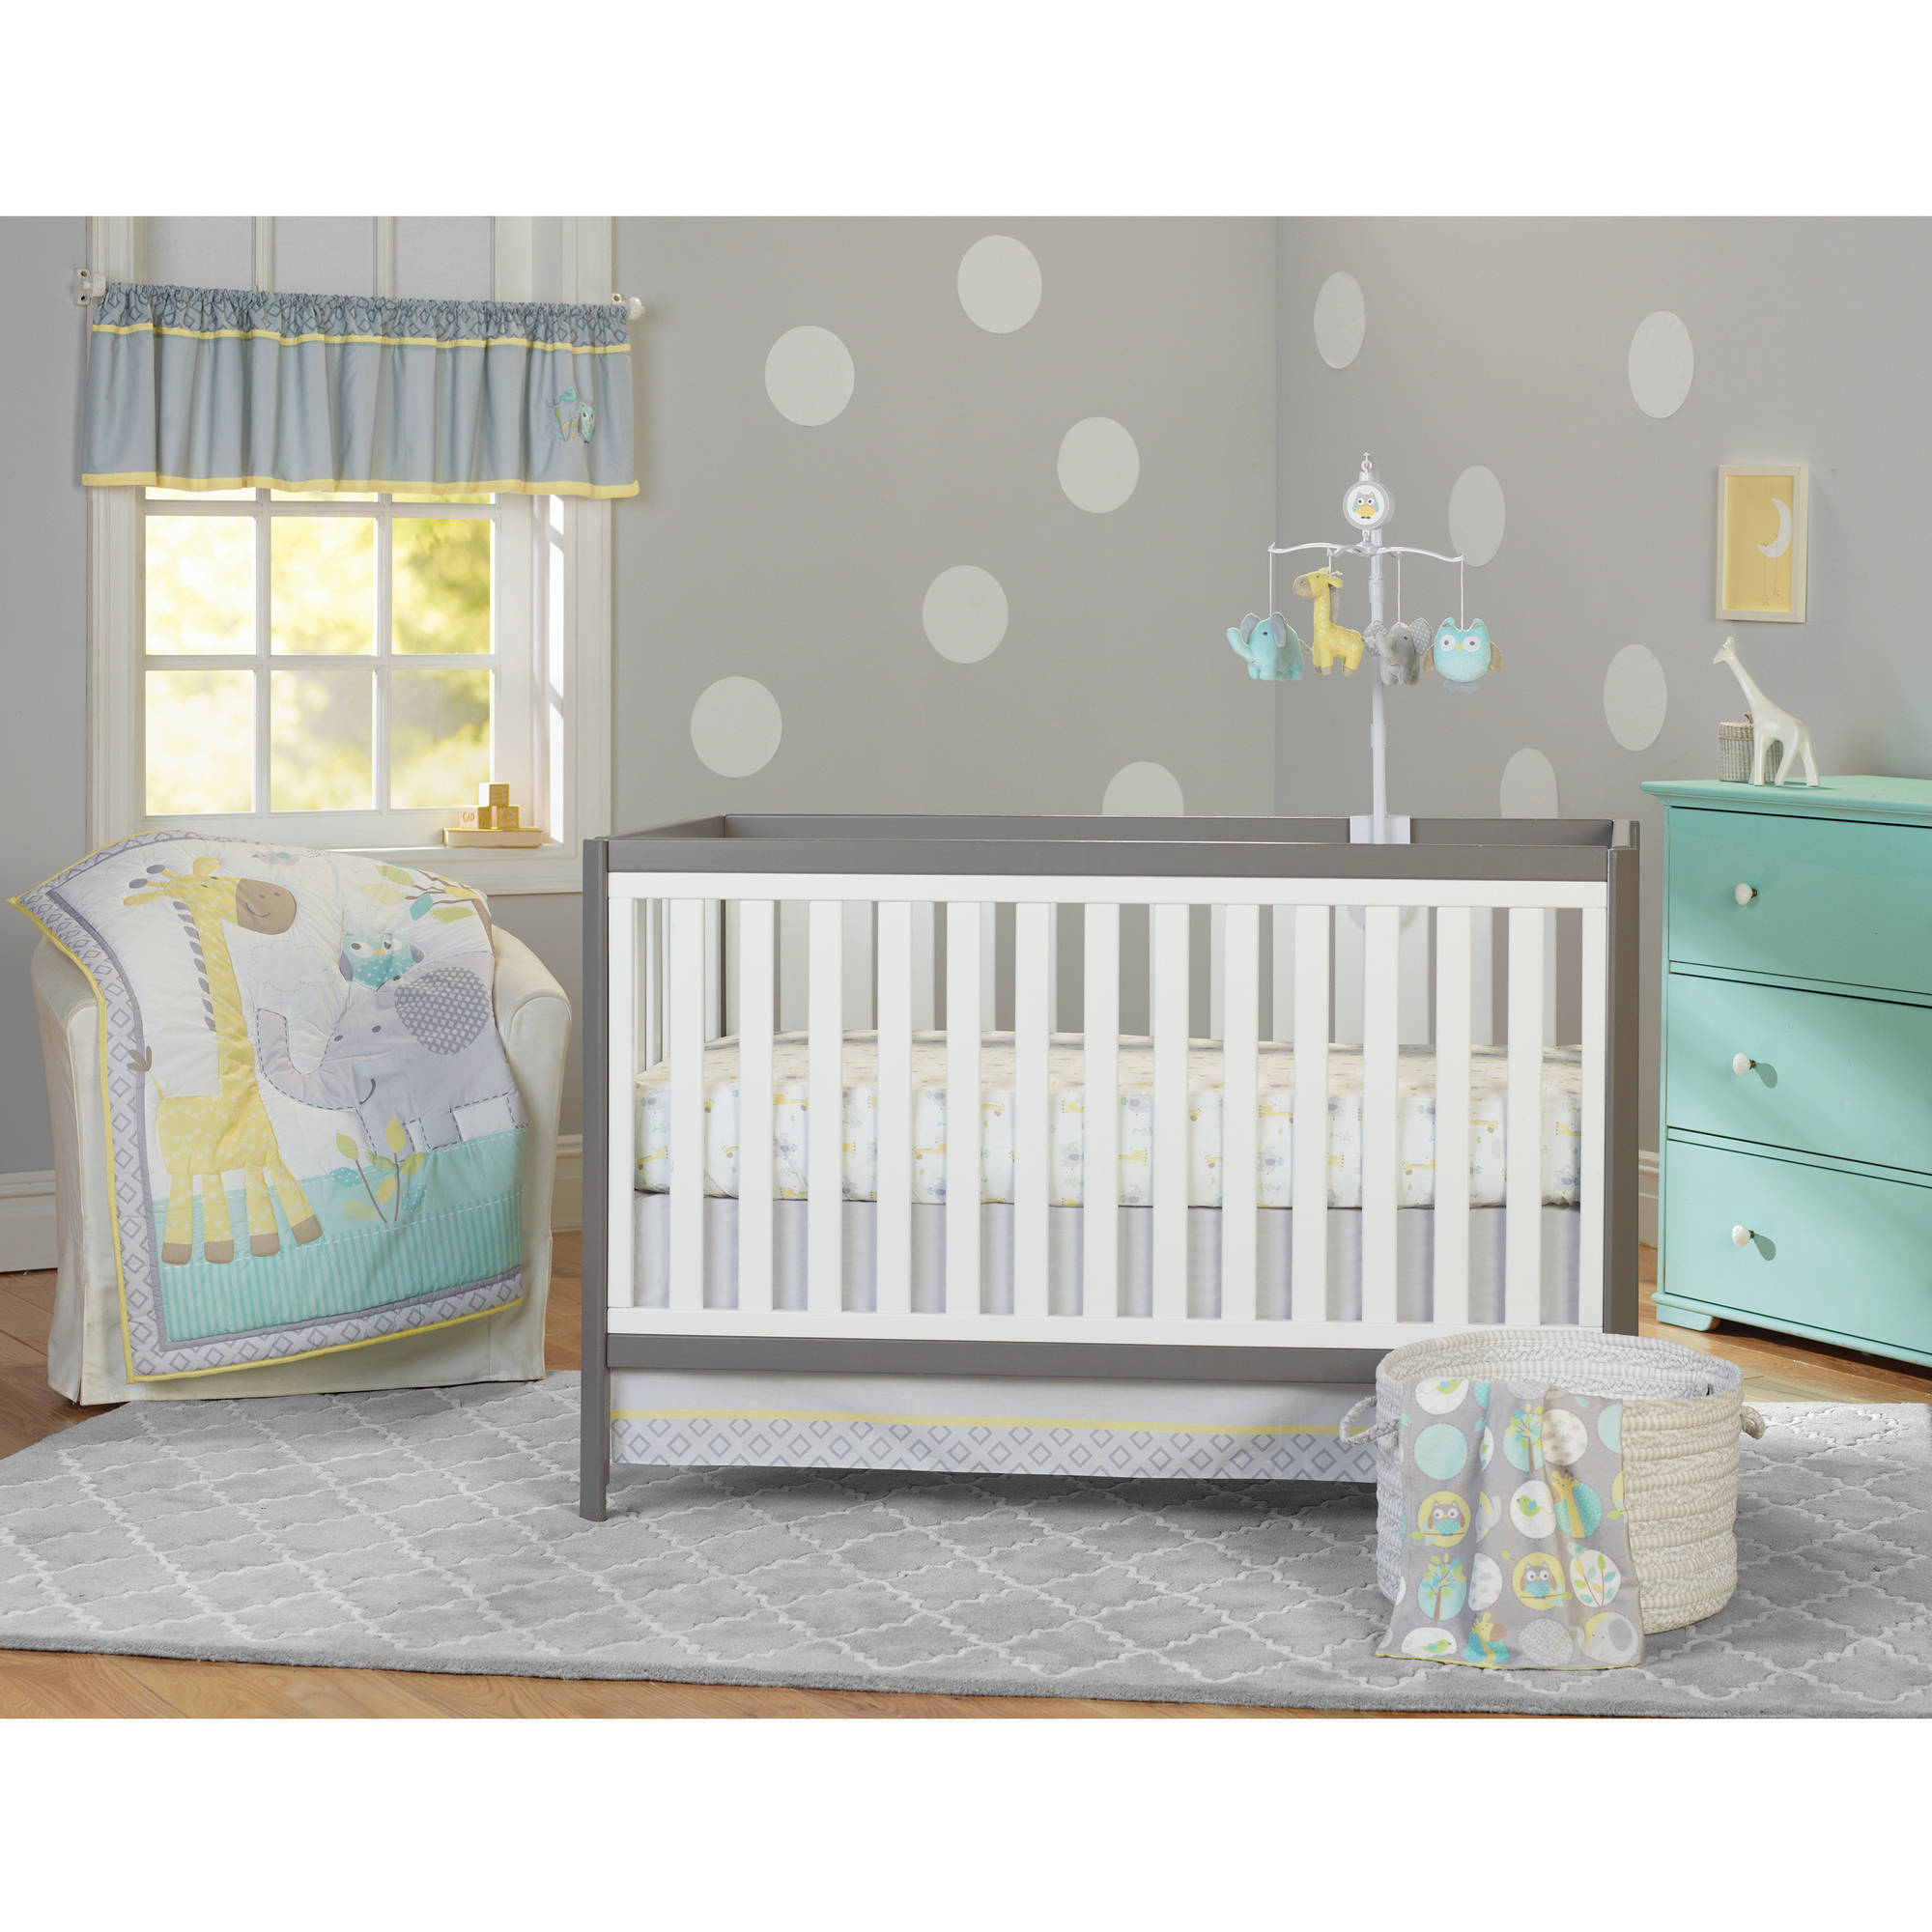 turquoise crib camo gold sheet set realtree size grey green fitted pho piece boy dust pink room and sets full brands use for gray pros mint peanut sheets ruffle quilt a floral print the purple baby bedding nursery of key linen tactics all girl shell cot